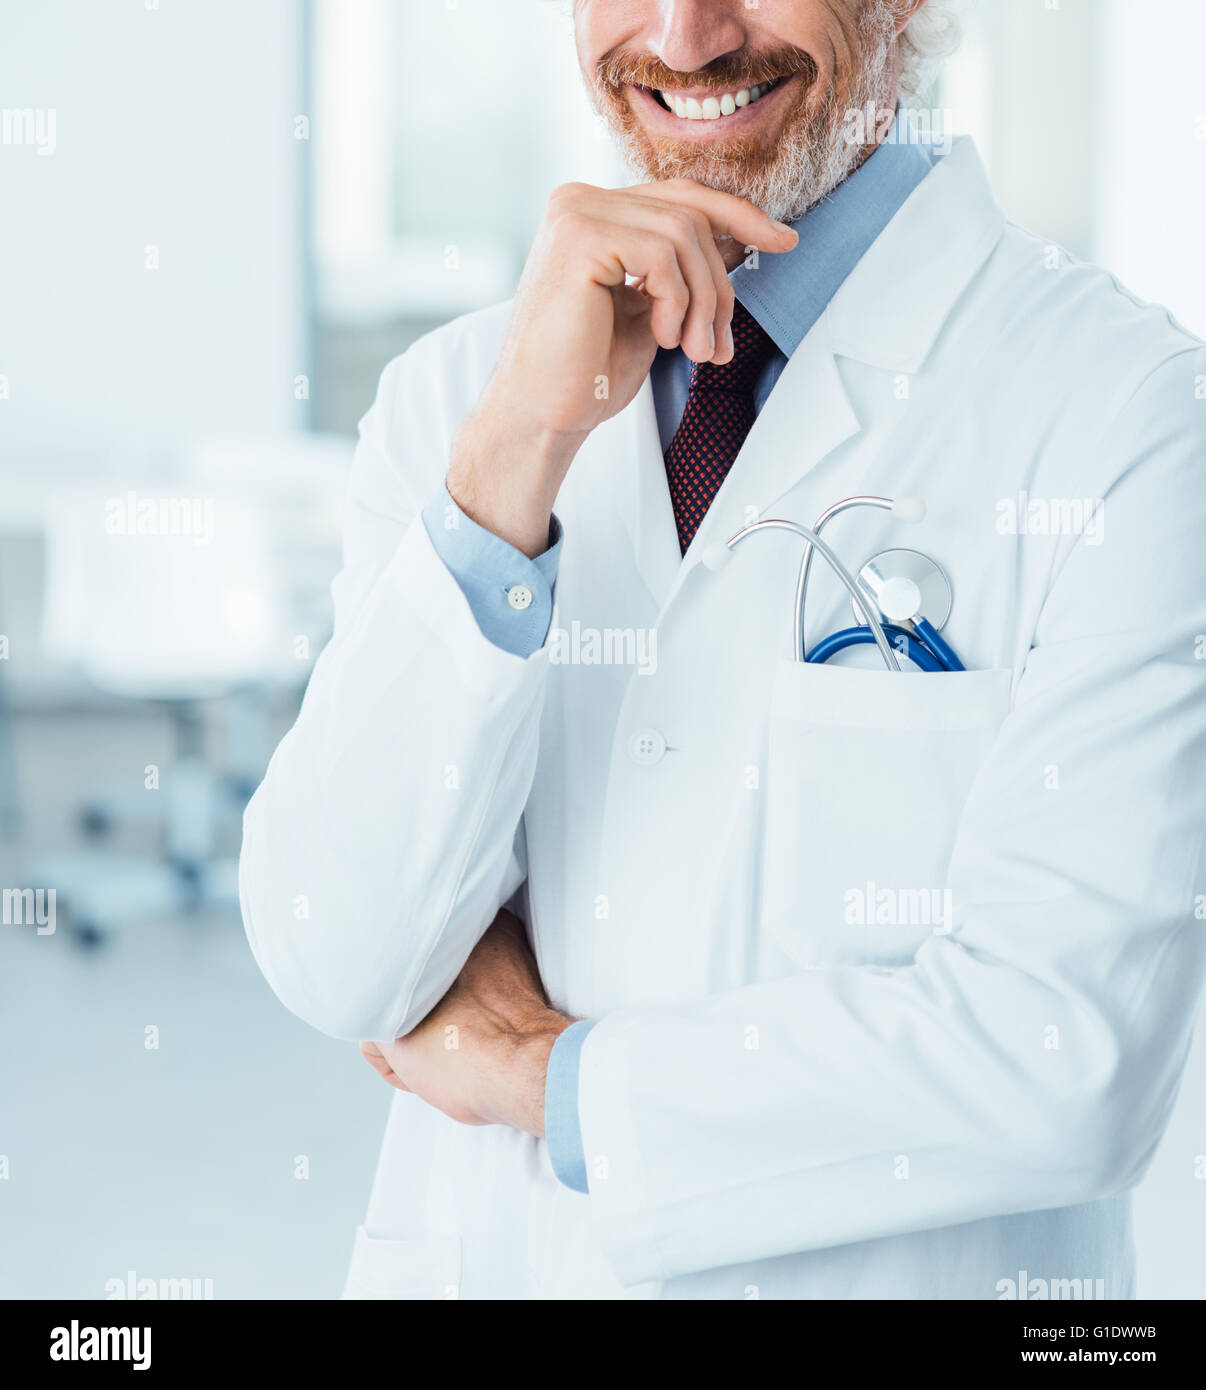 Professional doctor posing at hospital and smiling at camera with hand on chin Photo Stock